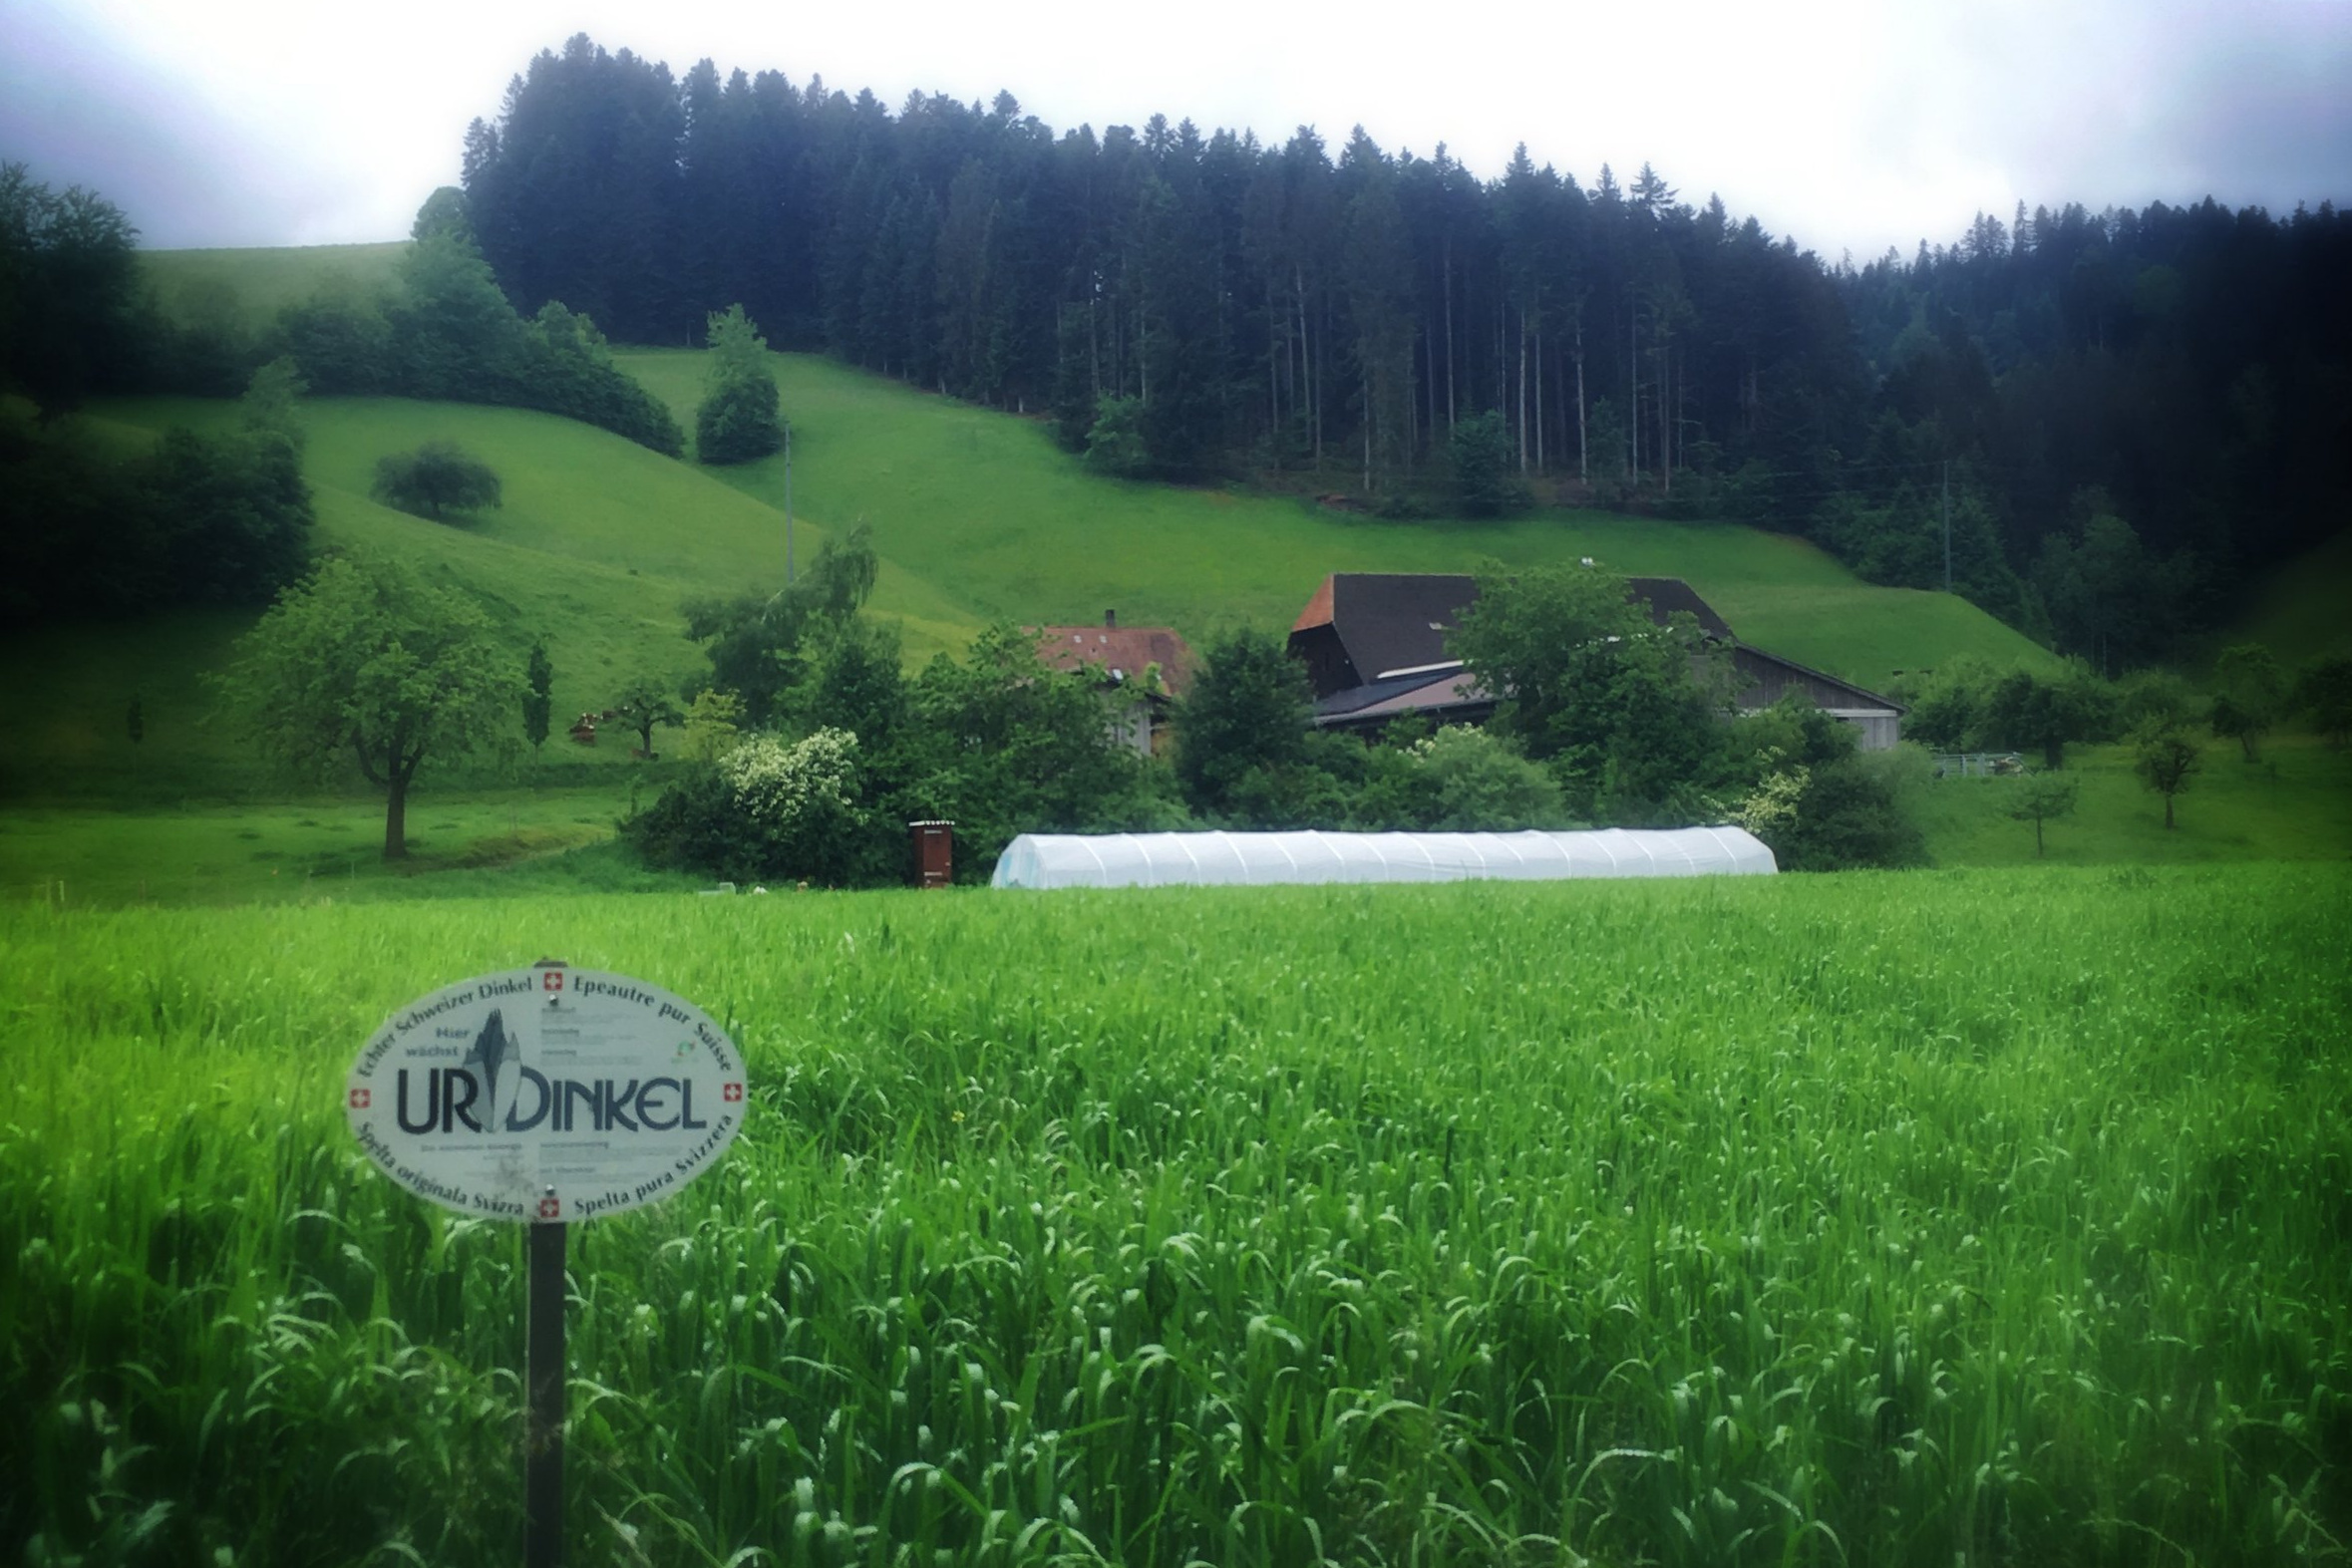 They grow  UrDinkel  across the street from our house in the Emmental.